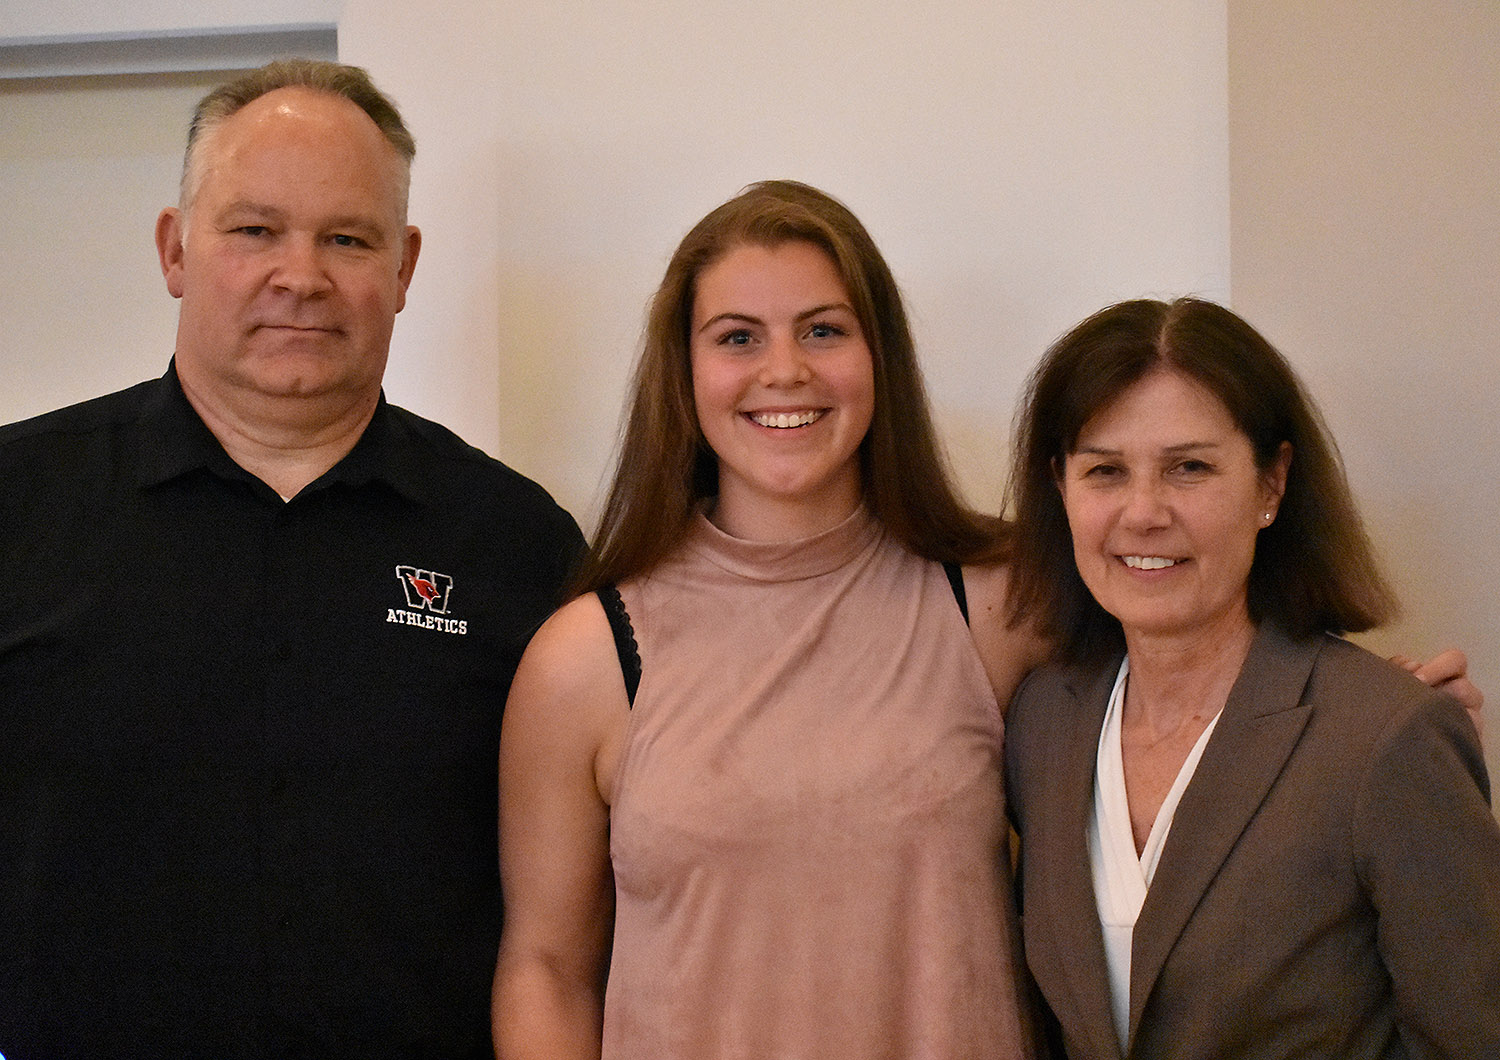 Basketball player Maddie Bledsoe '18 also received the Maynard Award. She is pictured with Whalen, left, and Kate Mullen, head women's basketball coach, right.